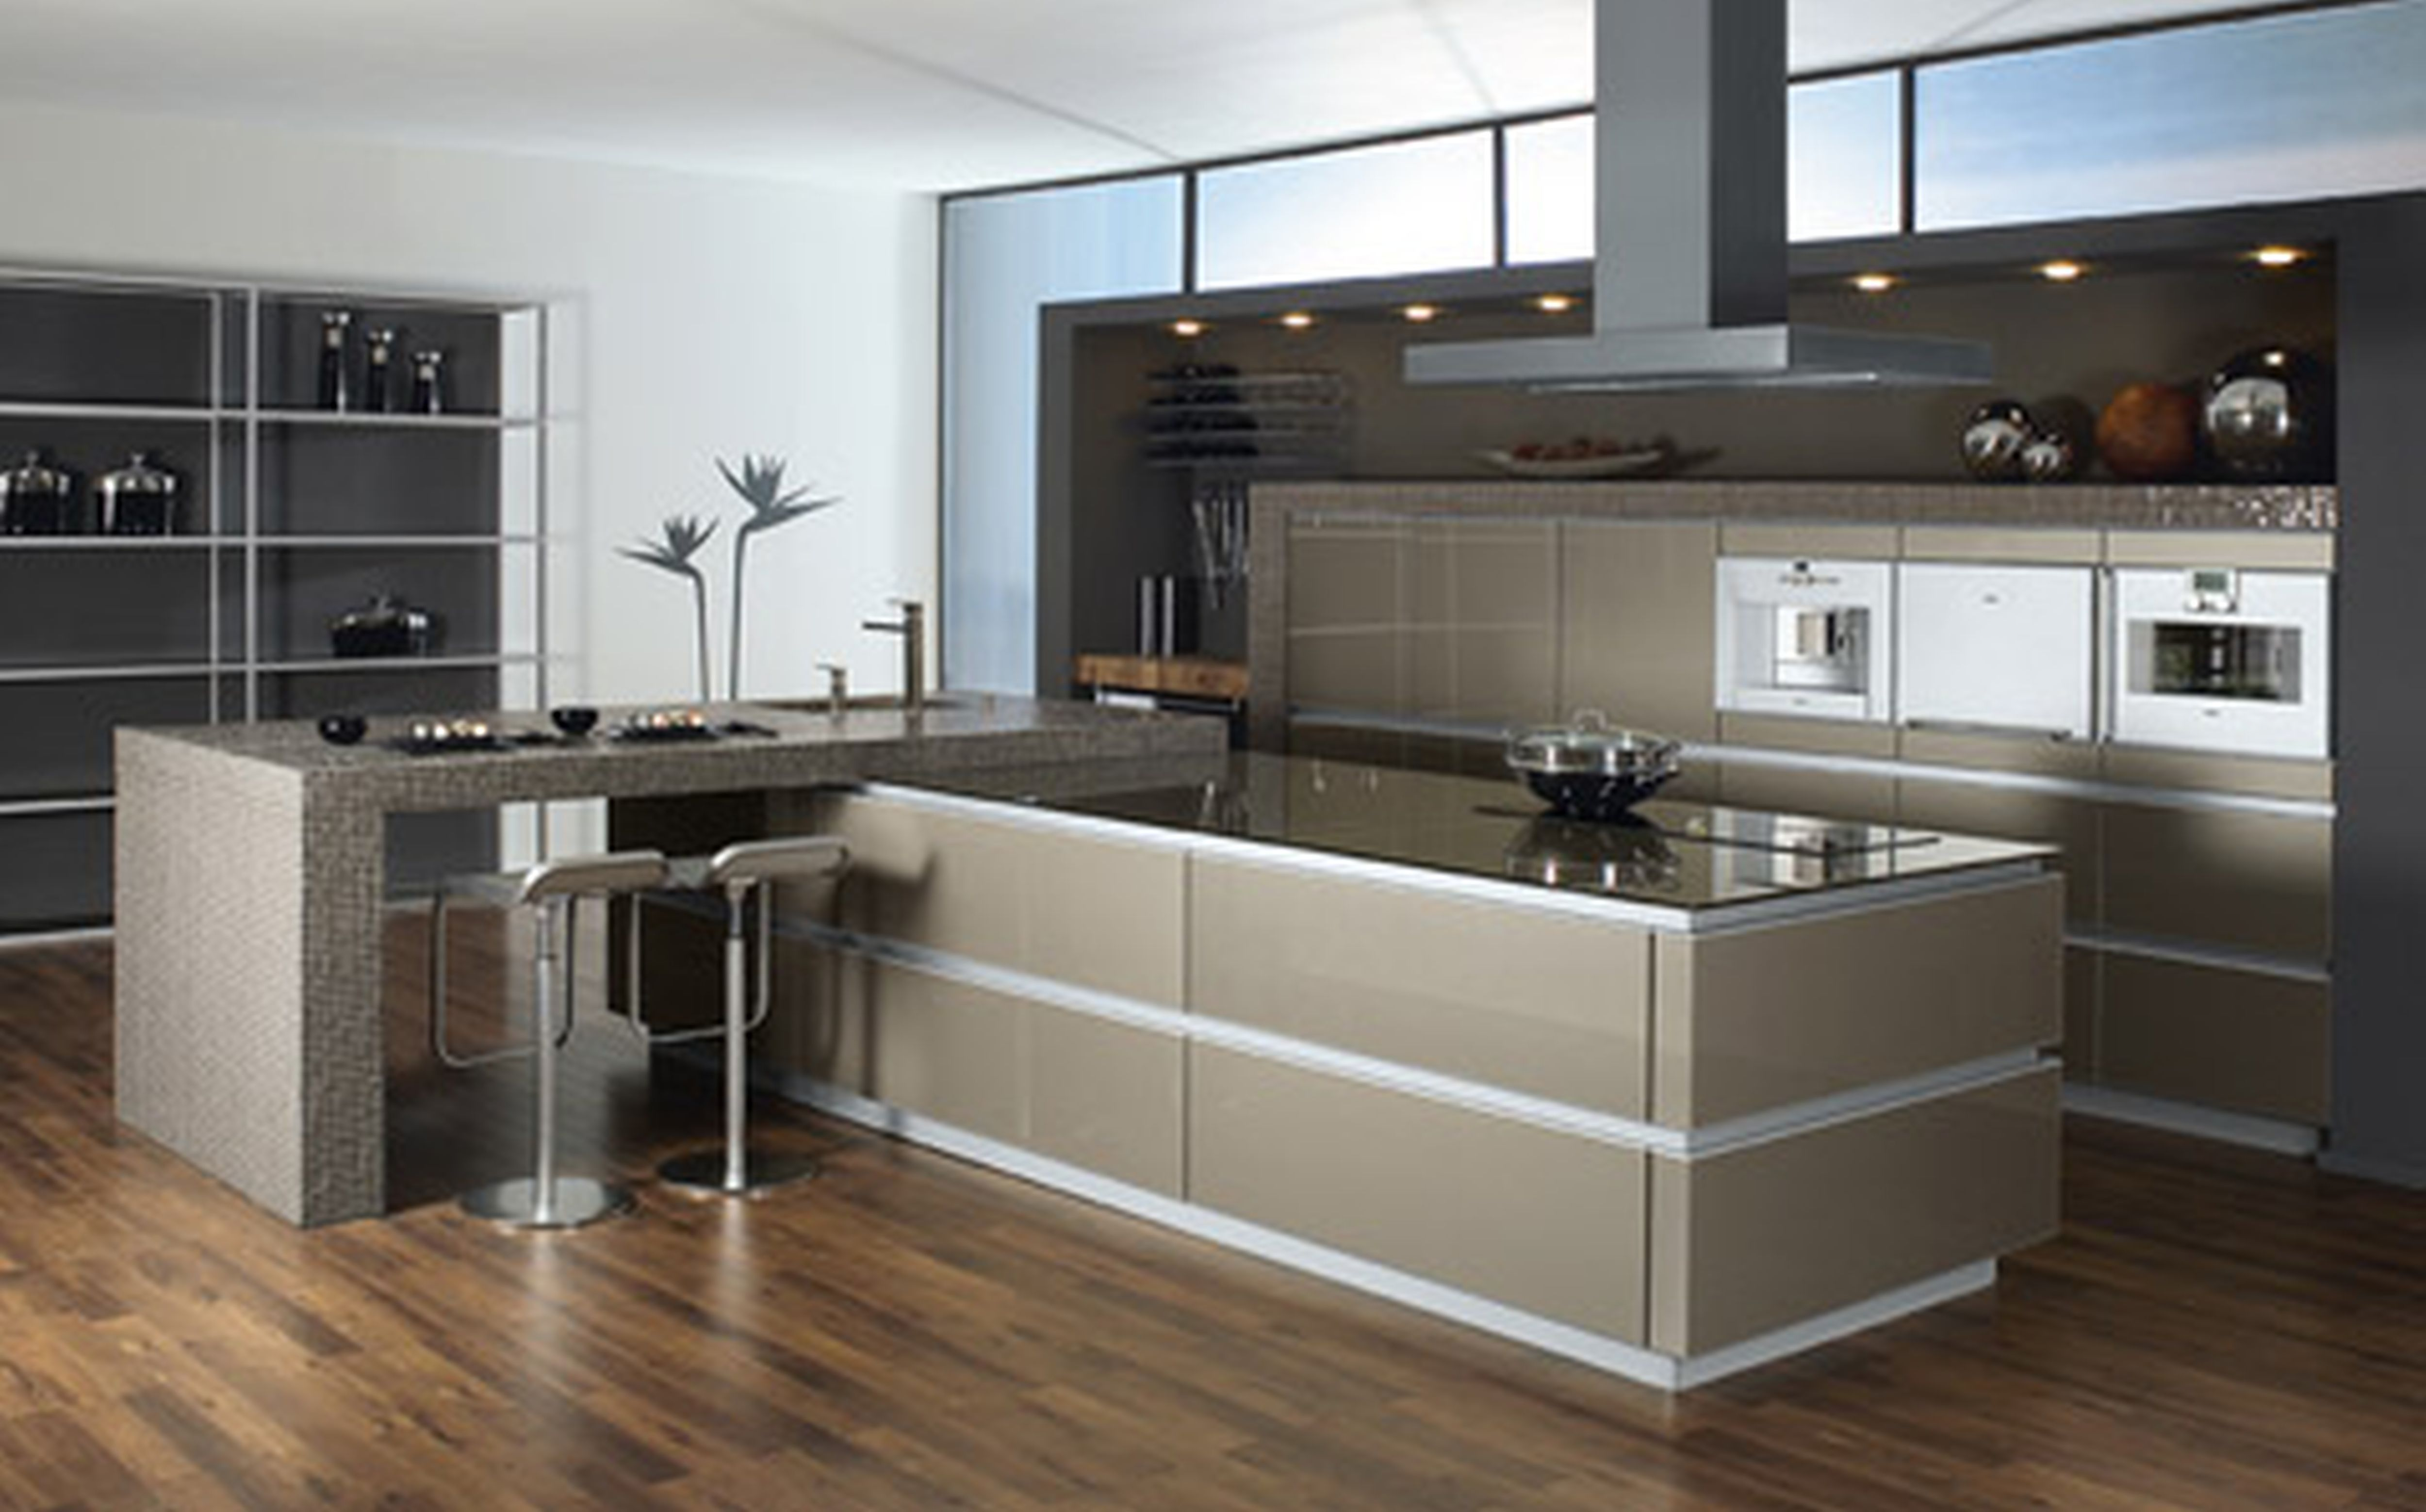 Contemporary Kitchens Inside Modern Style Kitchen Design Interior Endearing Contemporary Style Kitchen Cabinets Review